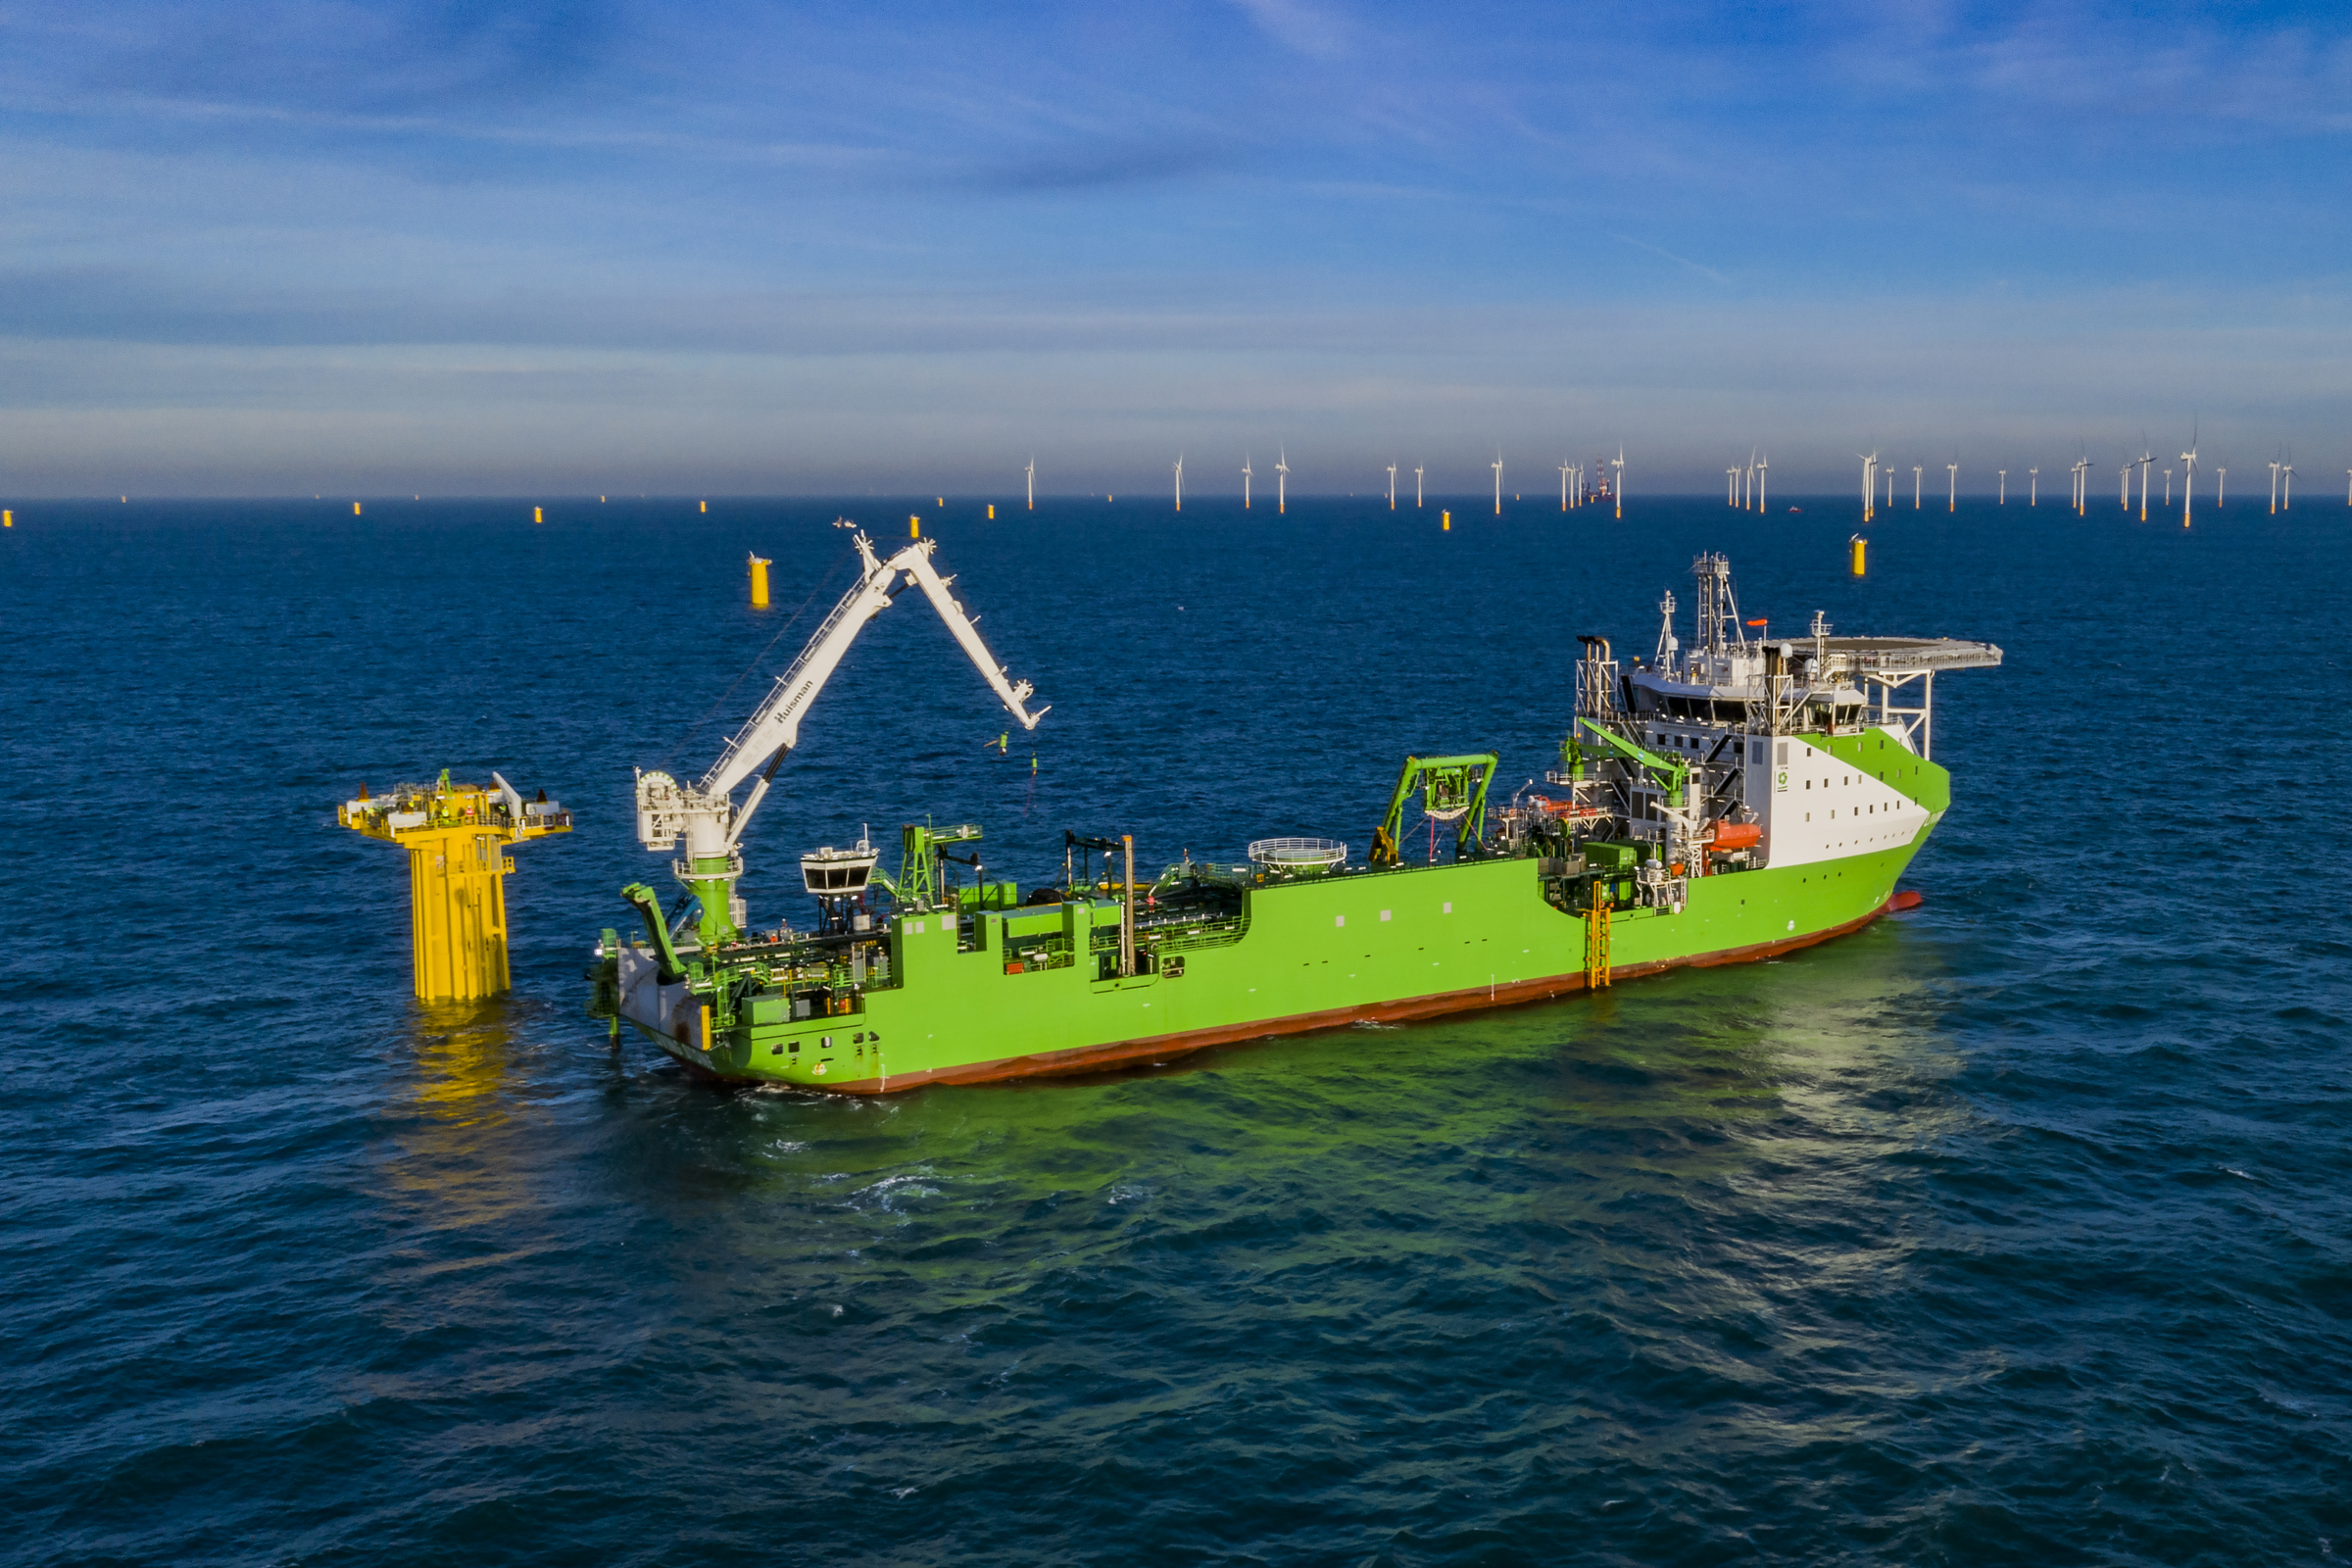 DEME Offshore signs contract for largest ever inter-array cable order with Dogger Bank Wind Farm